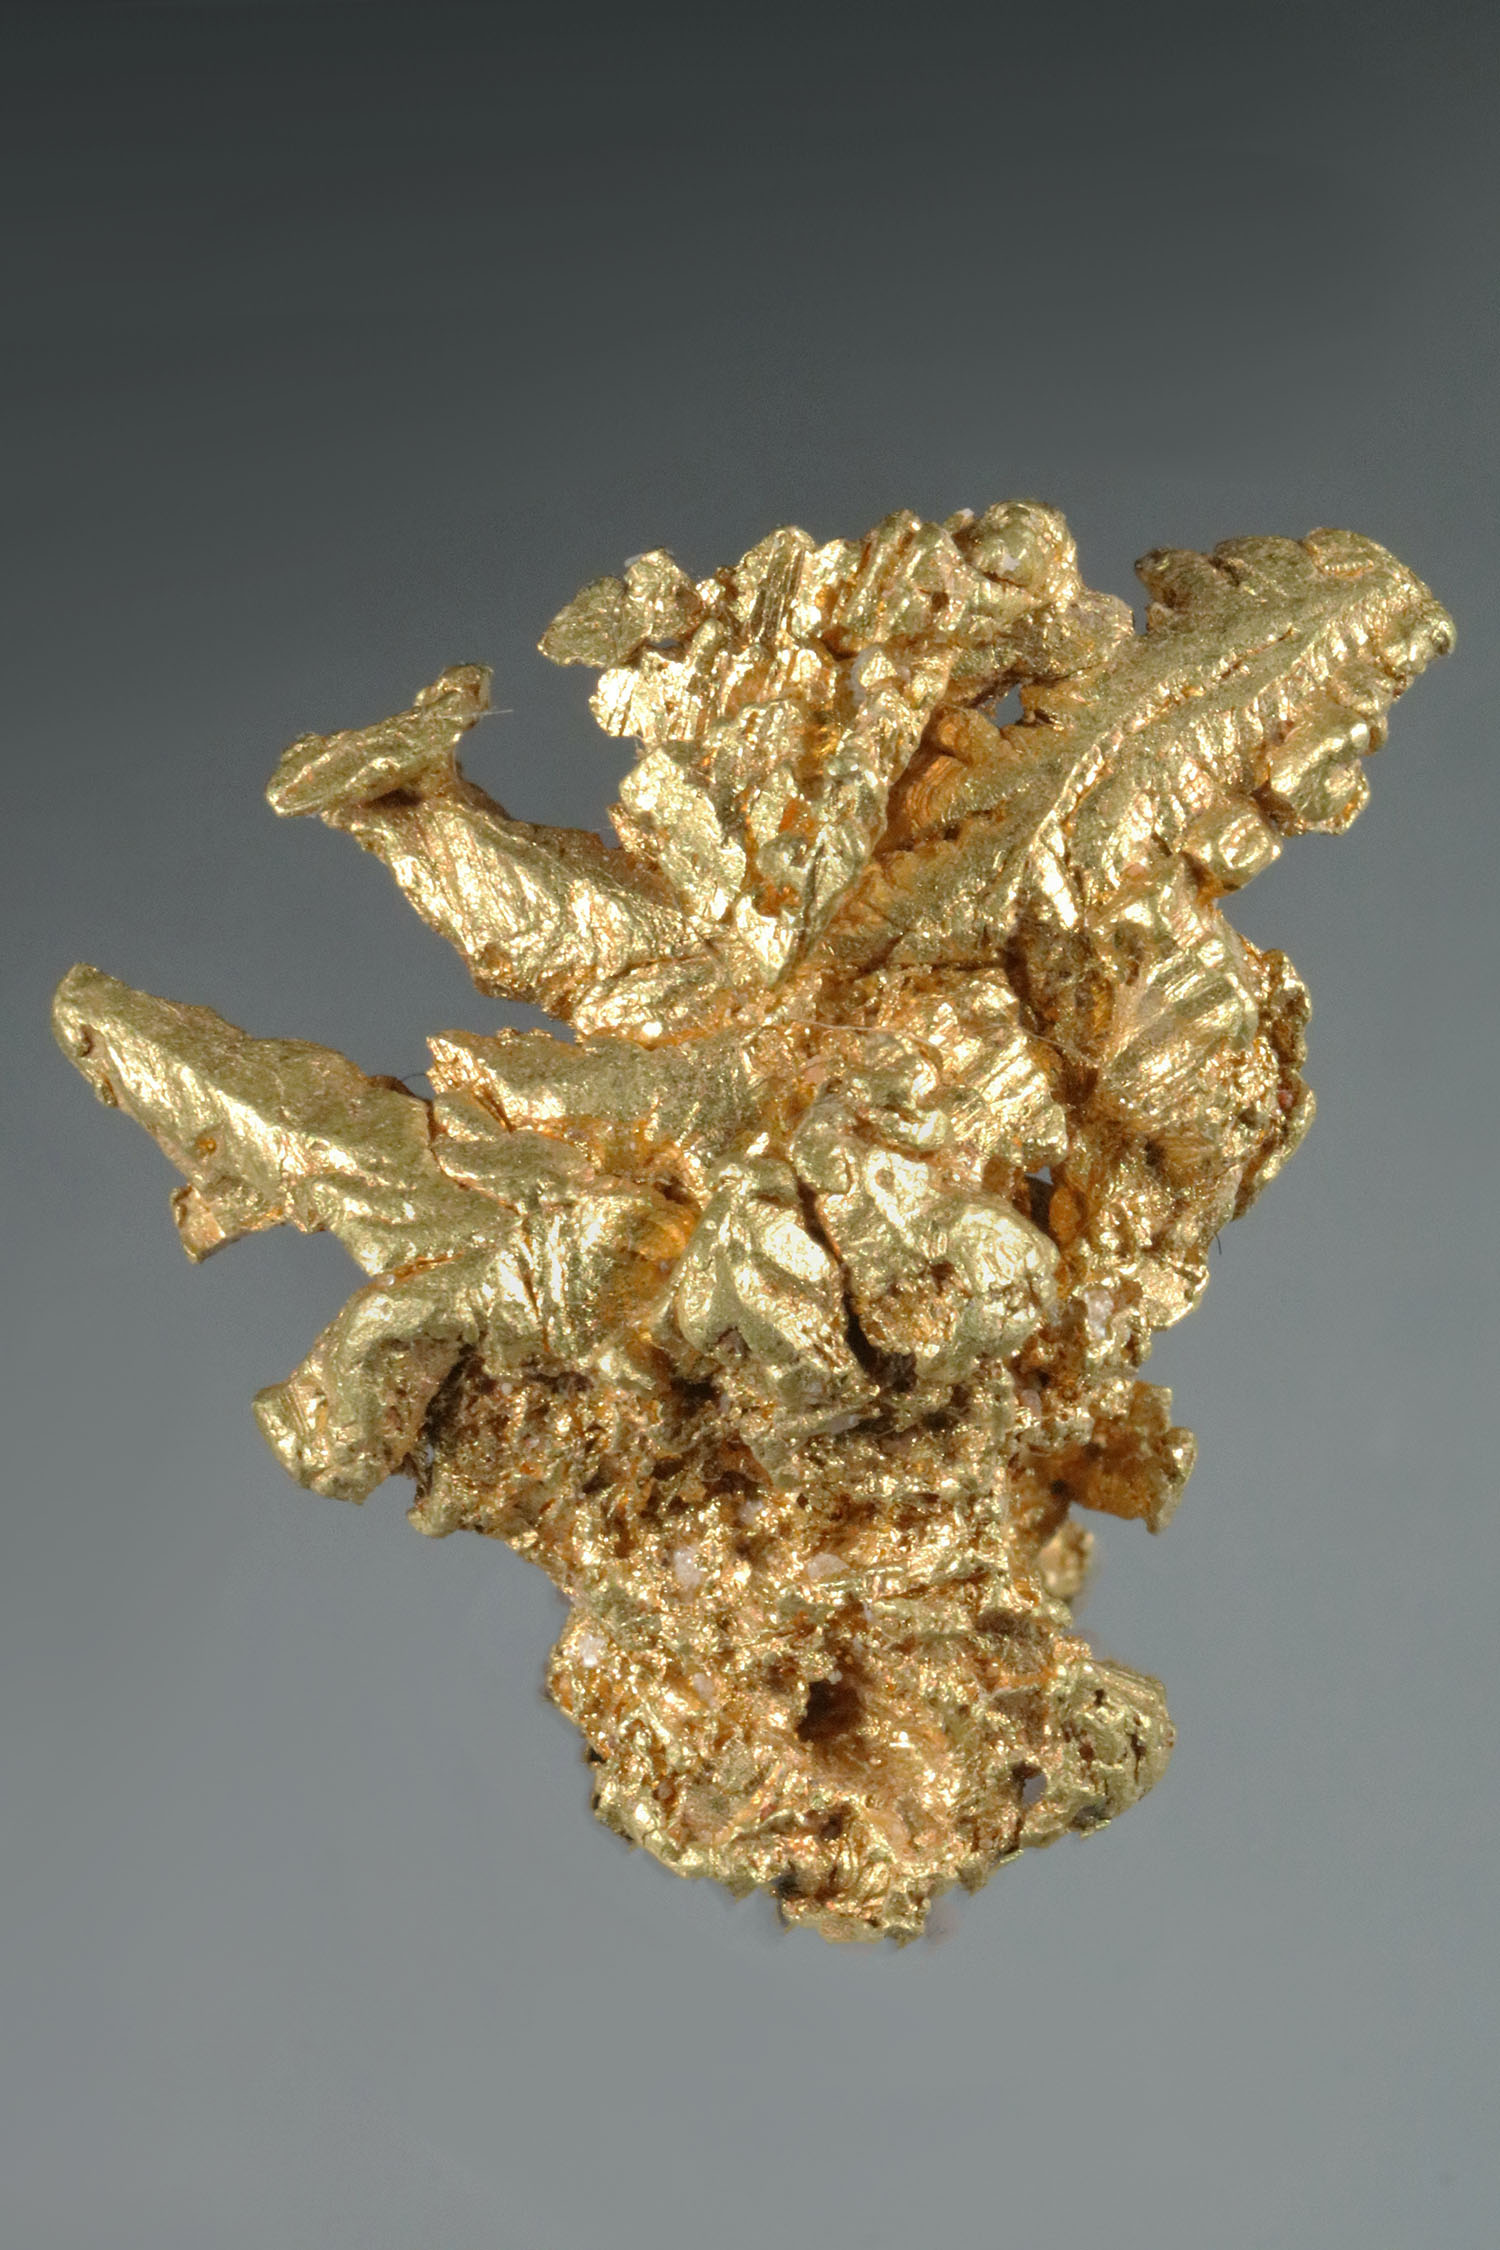 Papua New Guinea, Mt Kare Gold Crystal